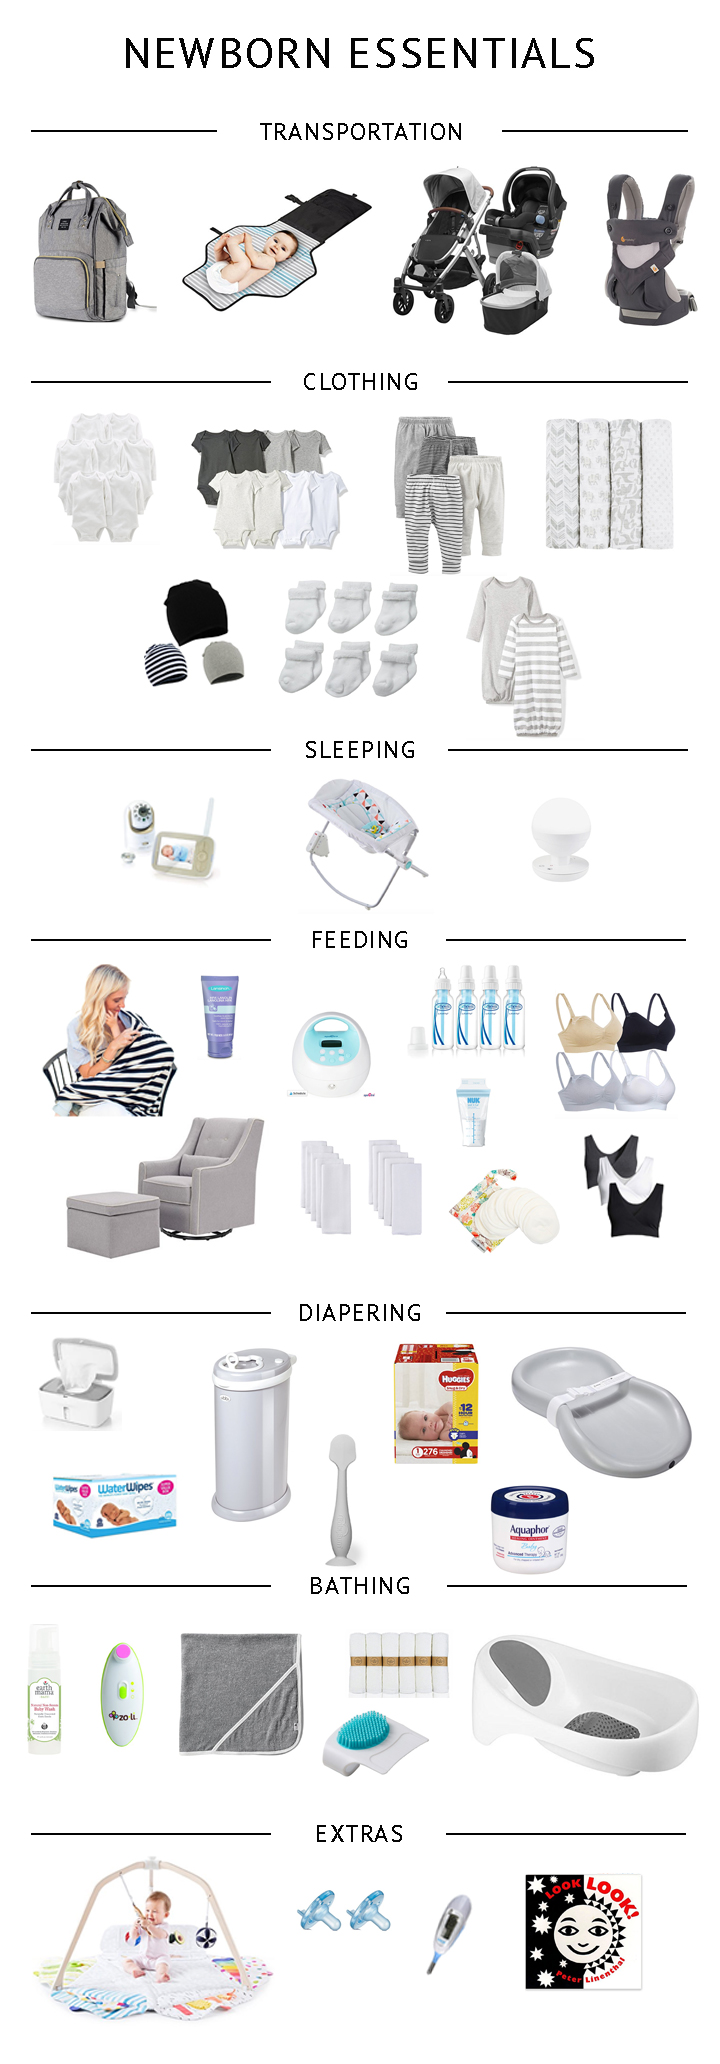 Baby Registry Checklist - essential newborn items for the minimalist mom and baby